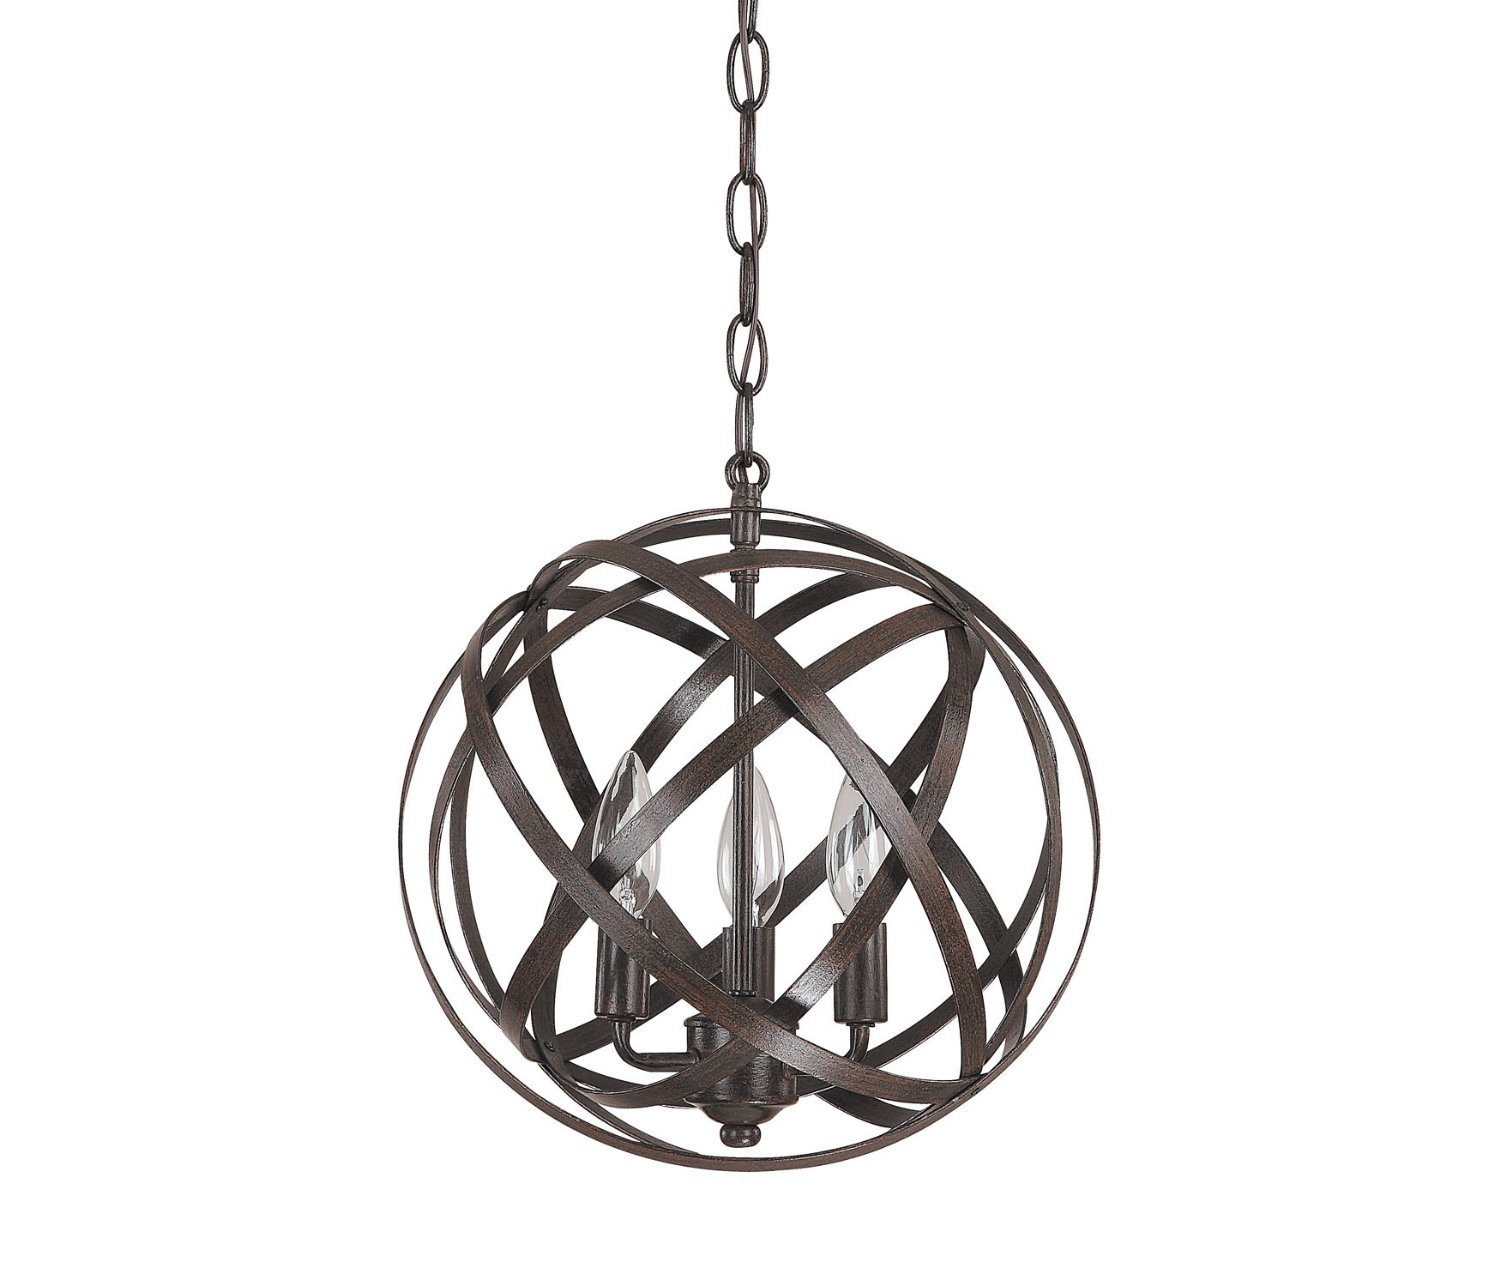 Top Lighting Sphere 3-Light Pendant Chandelier, Antique Bronze Finish